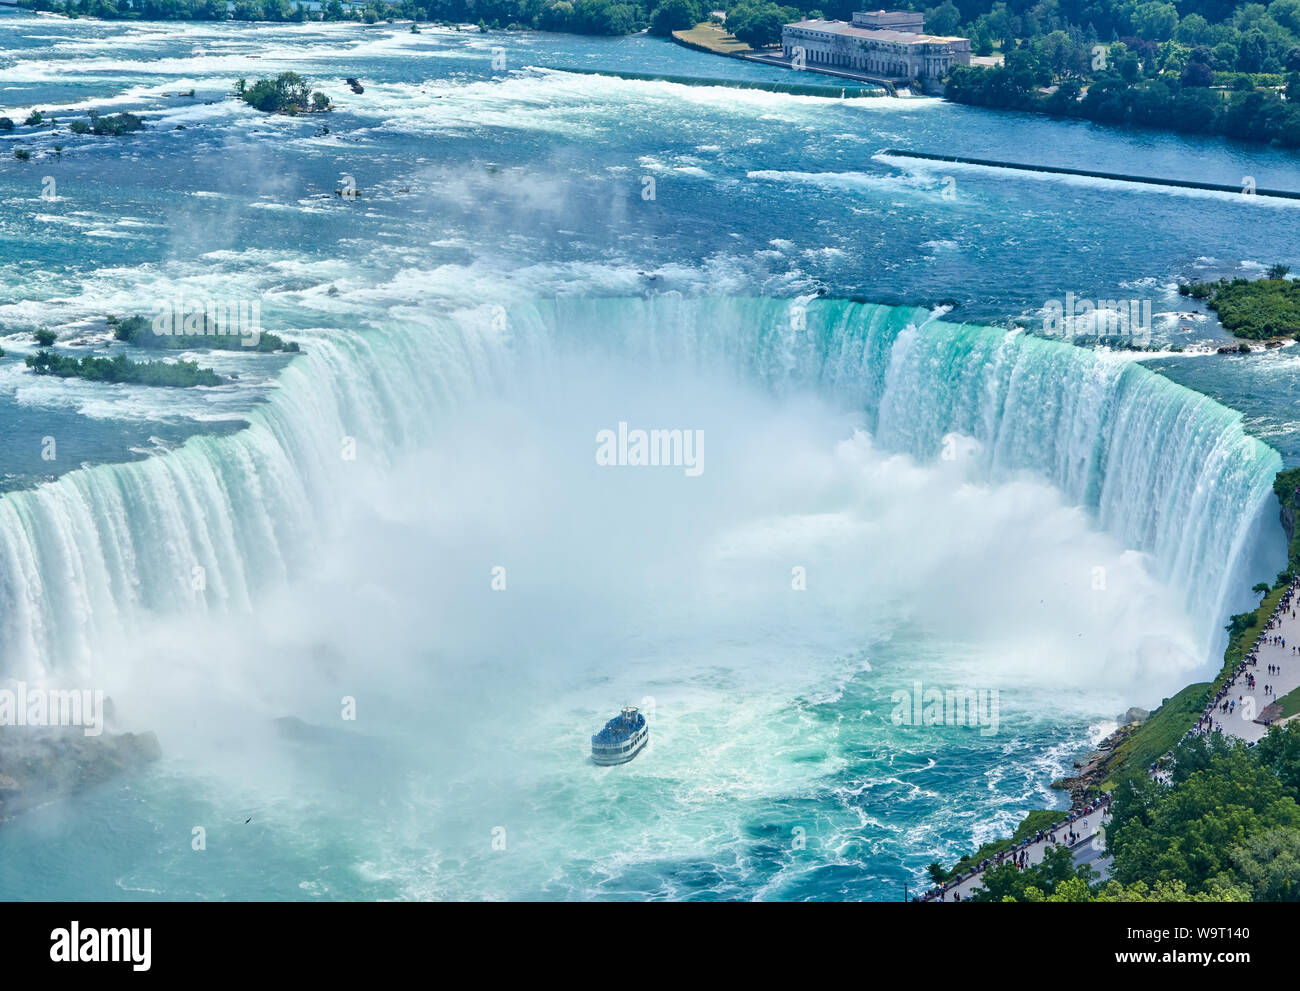 Beautiful Niagara Falls In Summer On A Clear Sunny Day View From Canadian Side Niagara Falls Ontario Canada Stock Photo Alamy